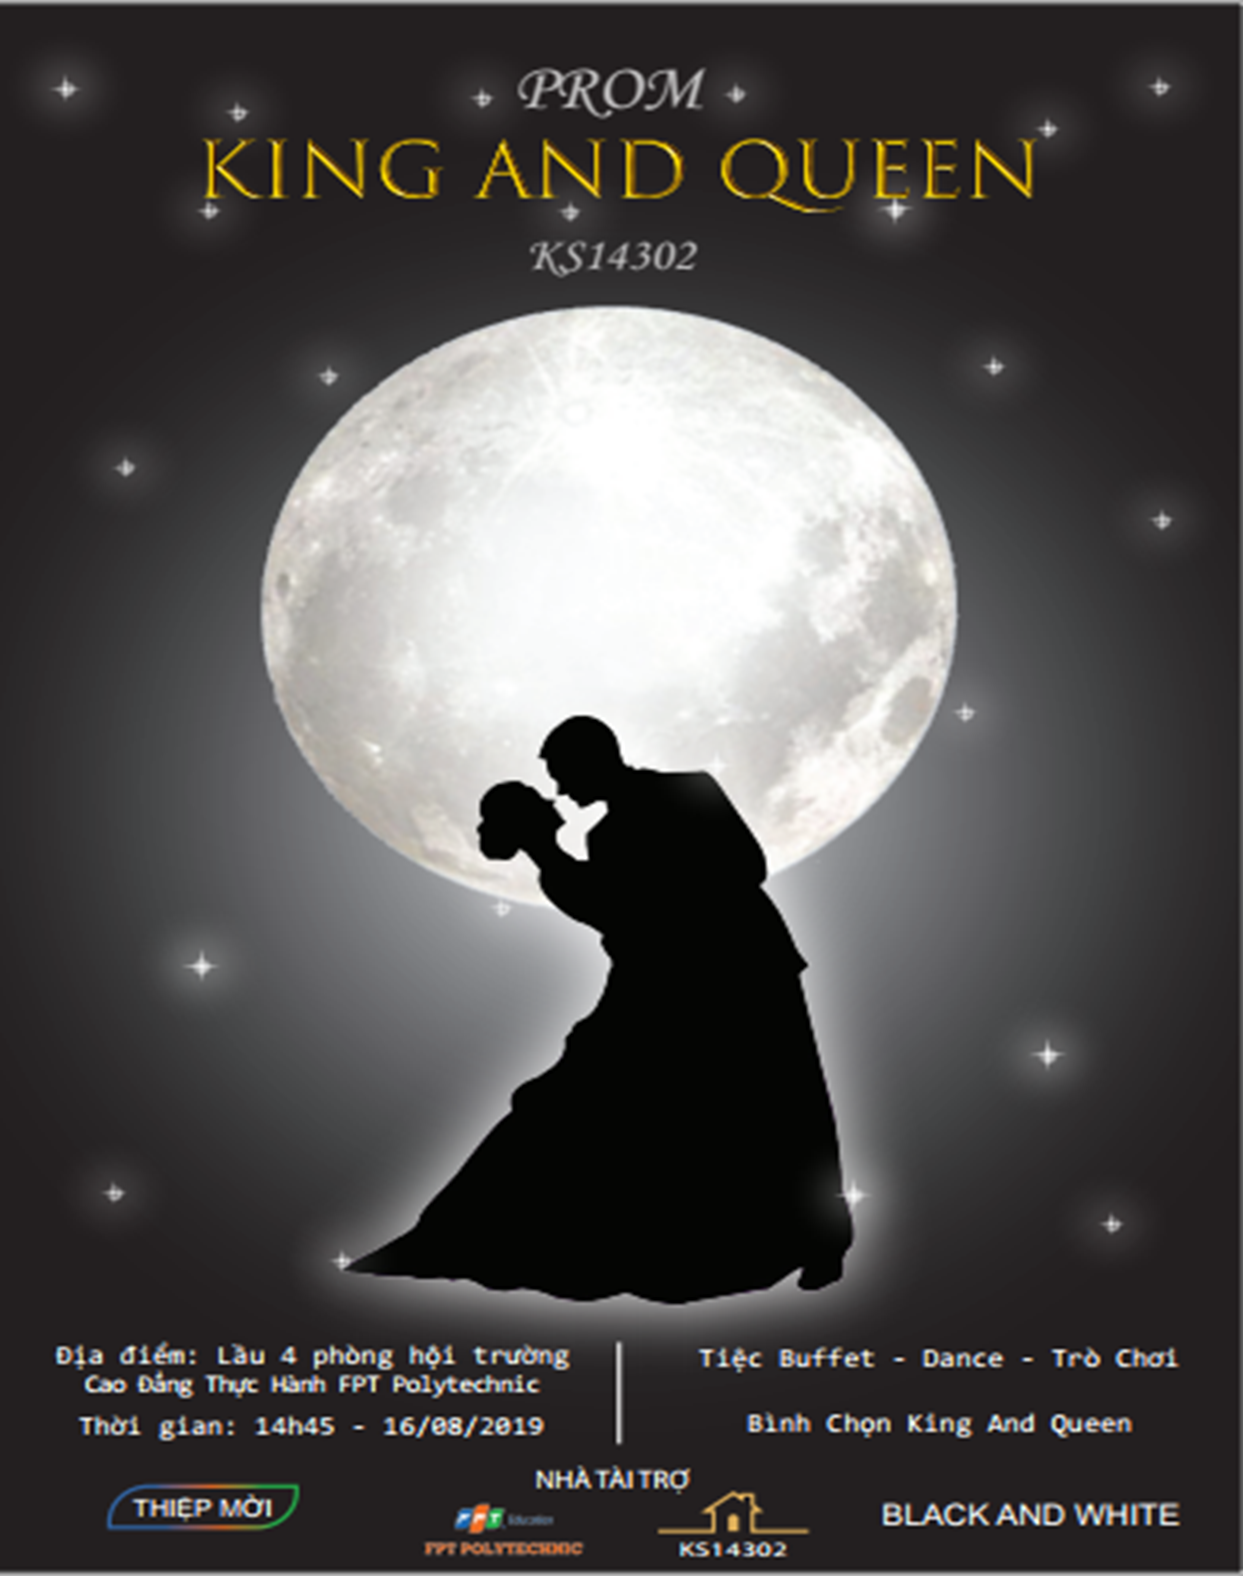 """Thiệp mời """" King And Queen """" lớp KS14302"""